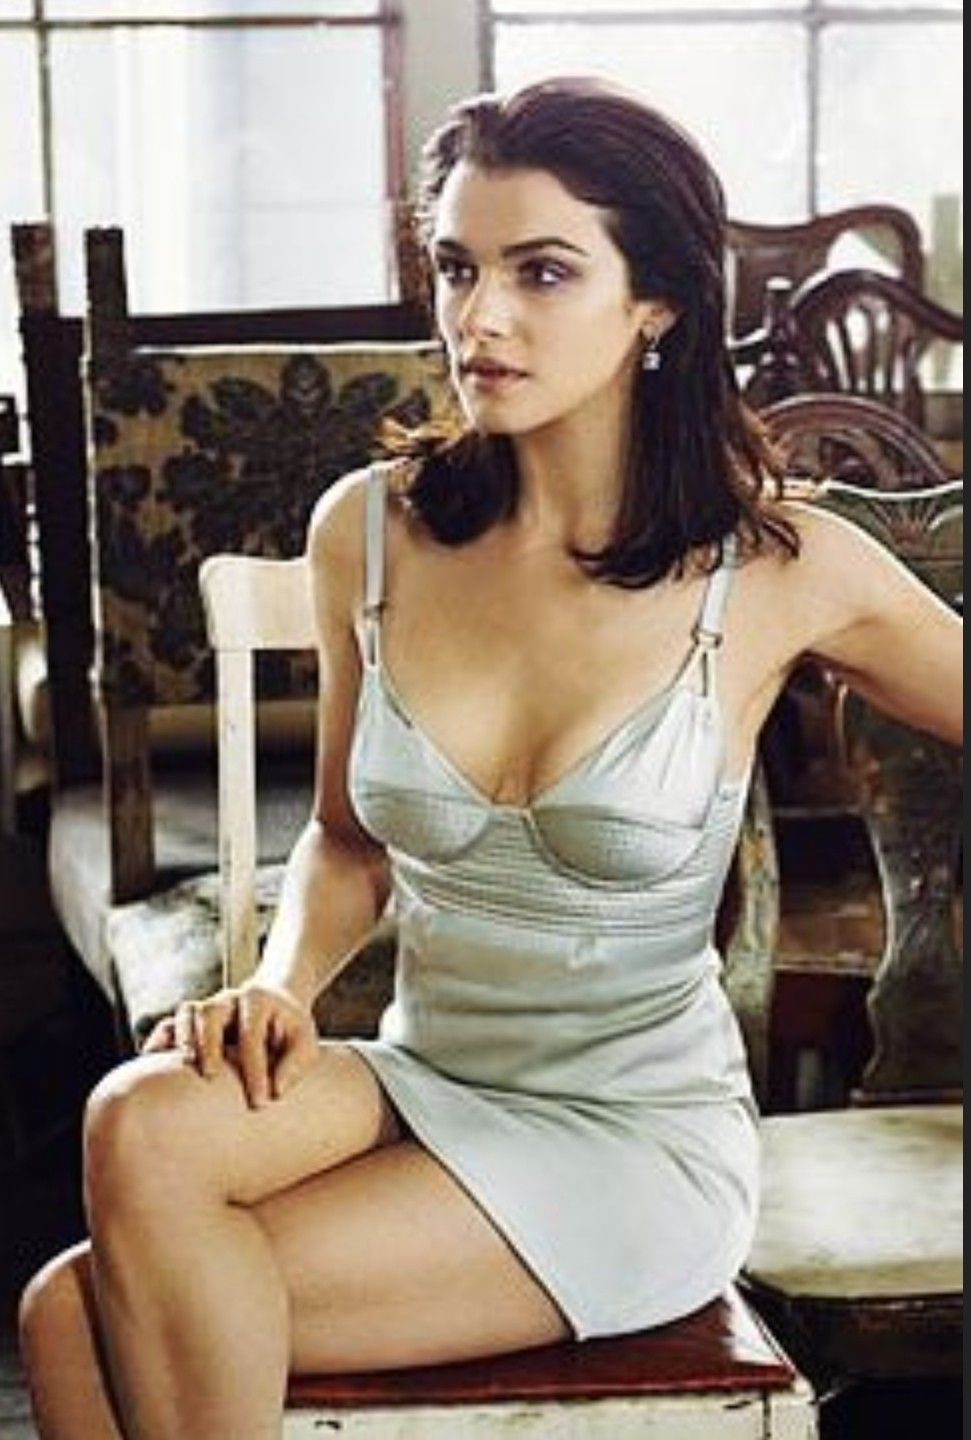 Rachel weisz naked picture with you